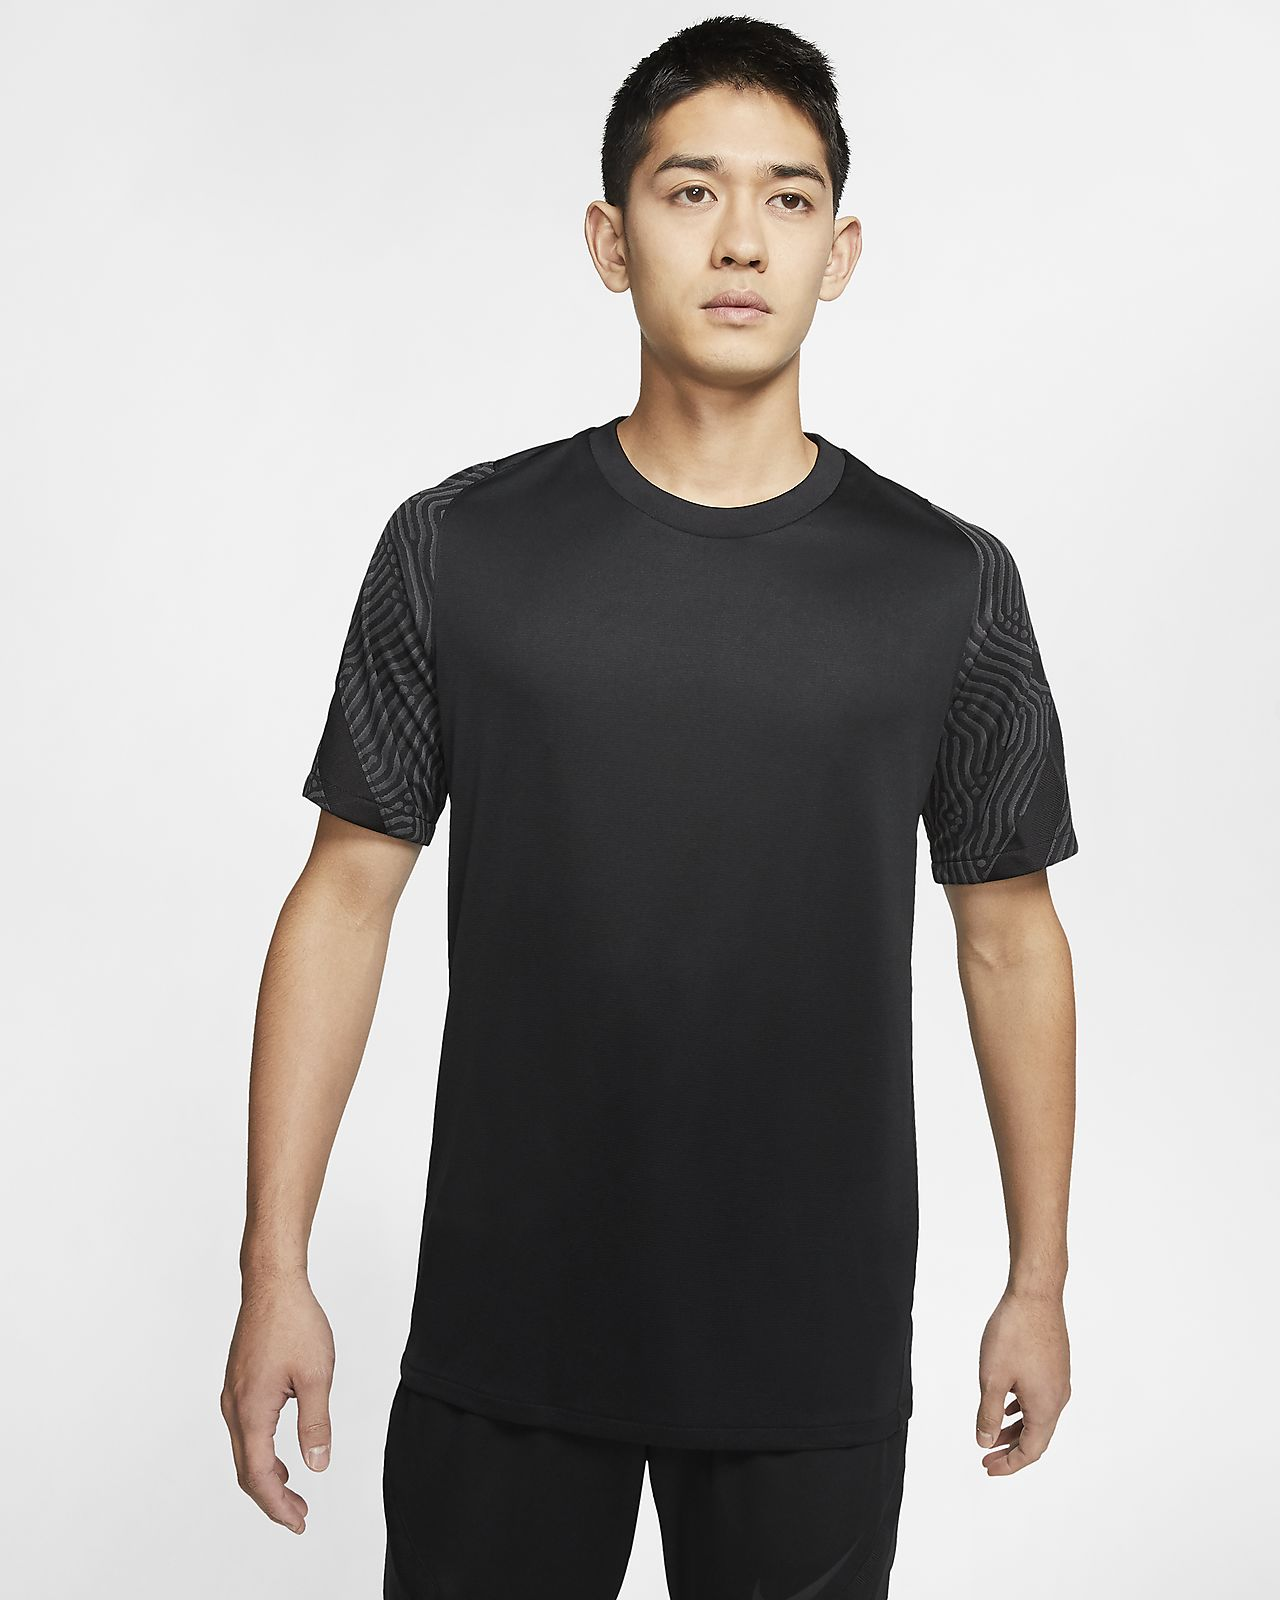 Nike Dri-FIT Strike Men's Short-Sleeve Soccer Top